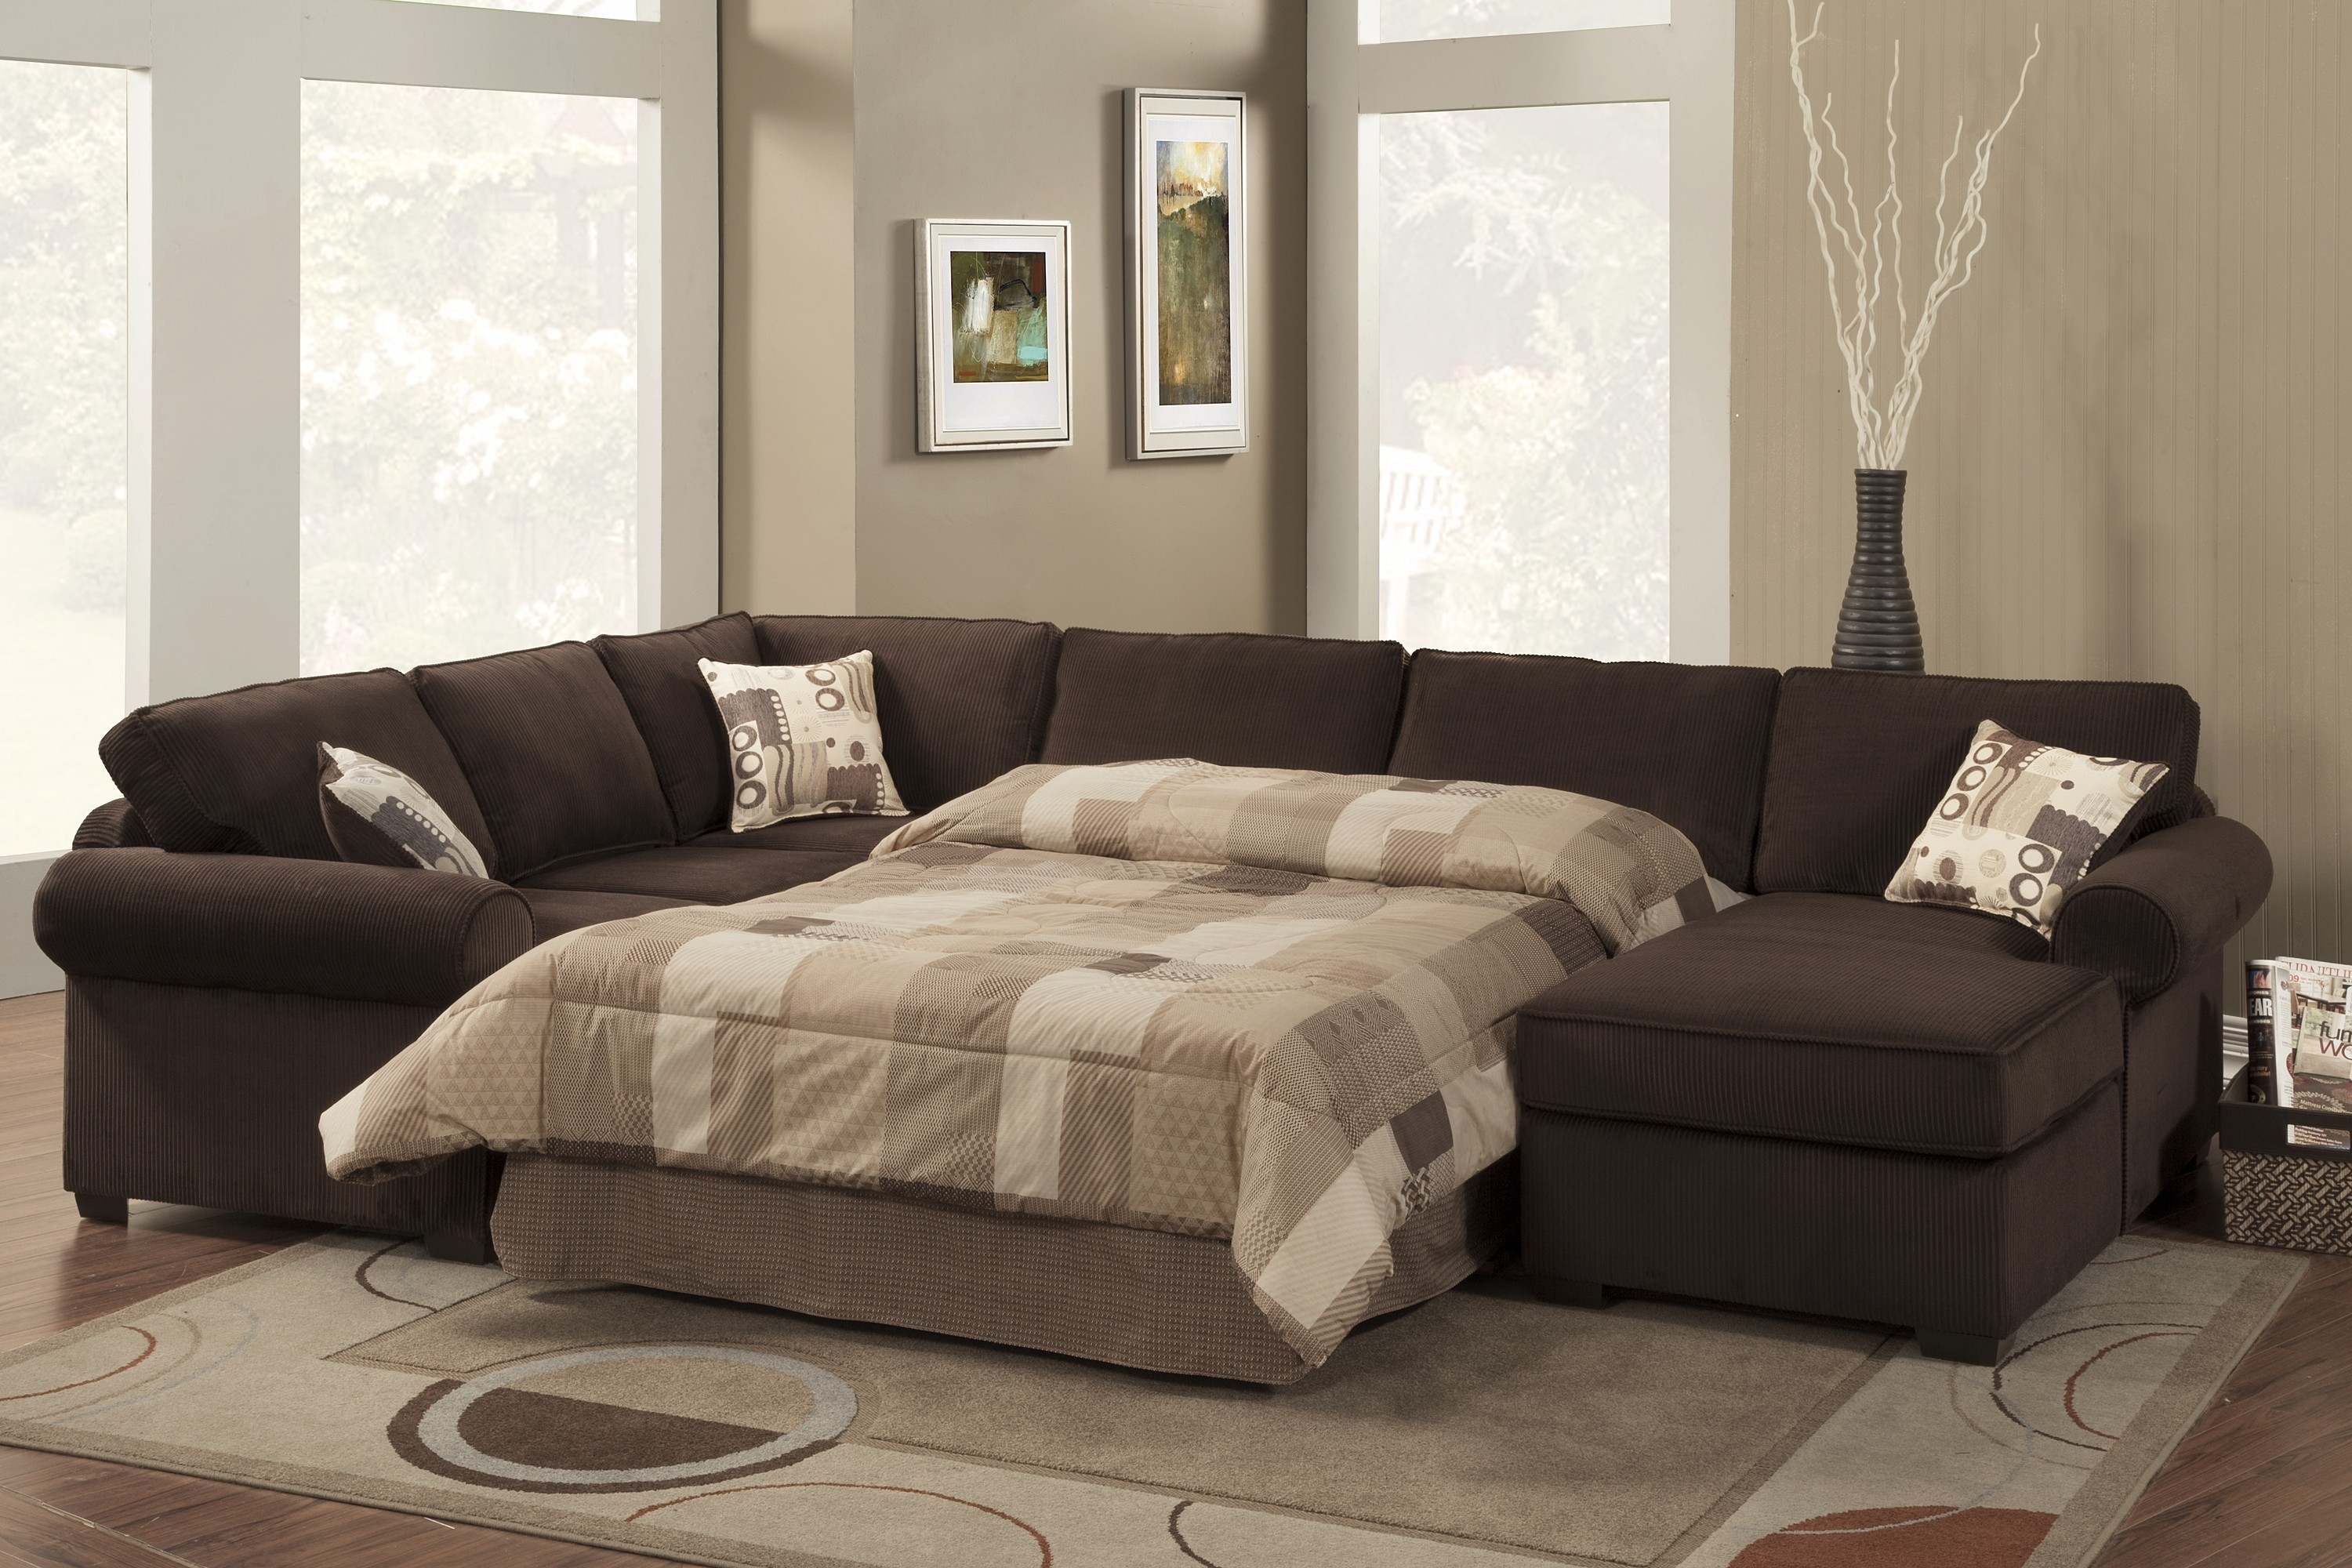 Astounding Sectional Sofas With Sleeper Bed 13 With Additional Small With Portland Or Sectional Sofas (View 8 of 10)